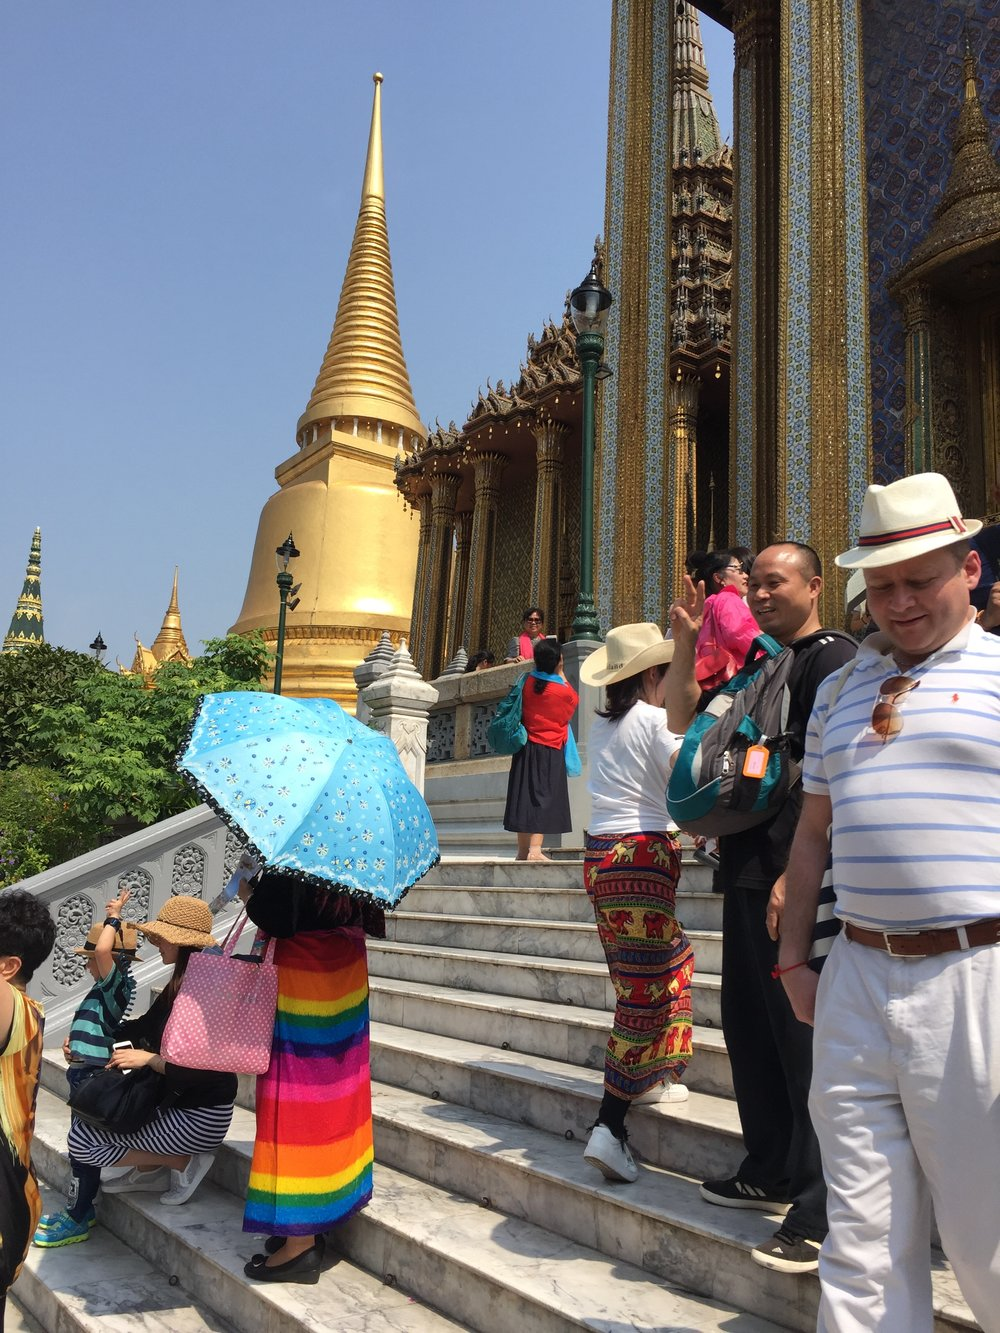 Tourists blocking your path, Wat Phra Kaew